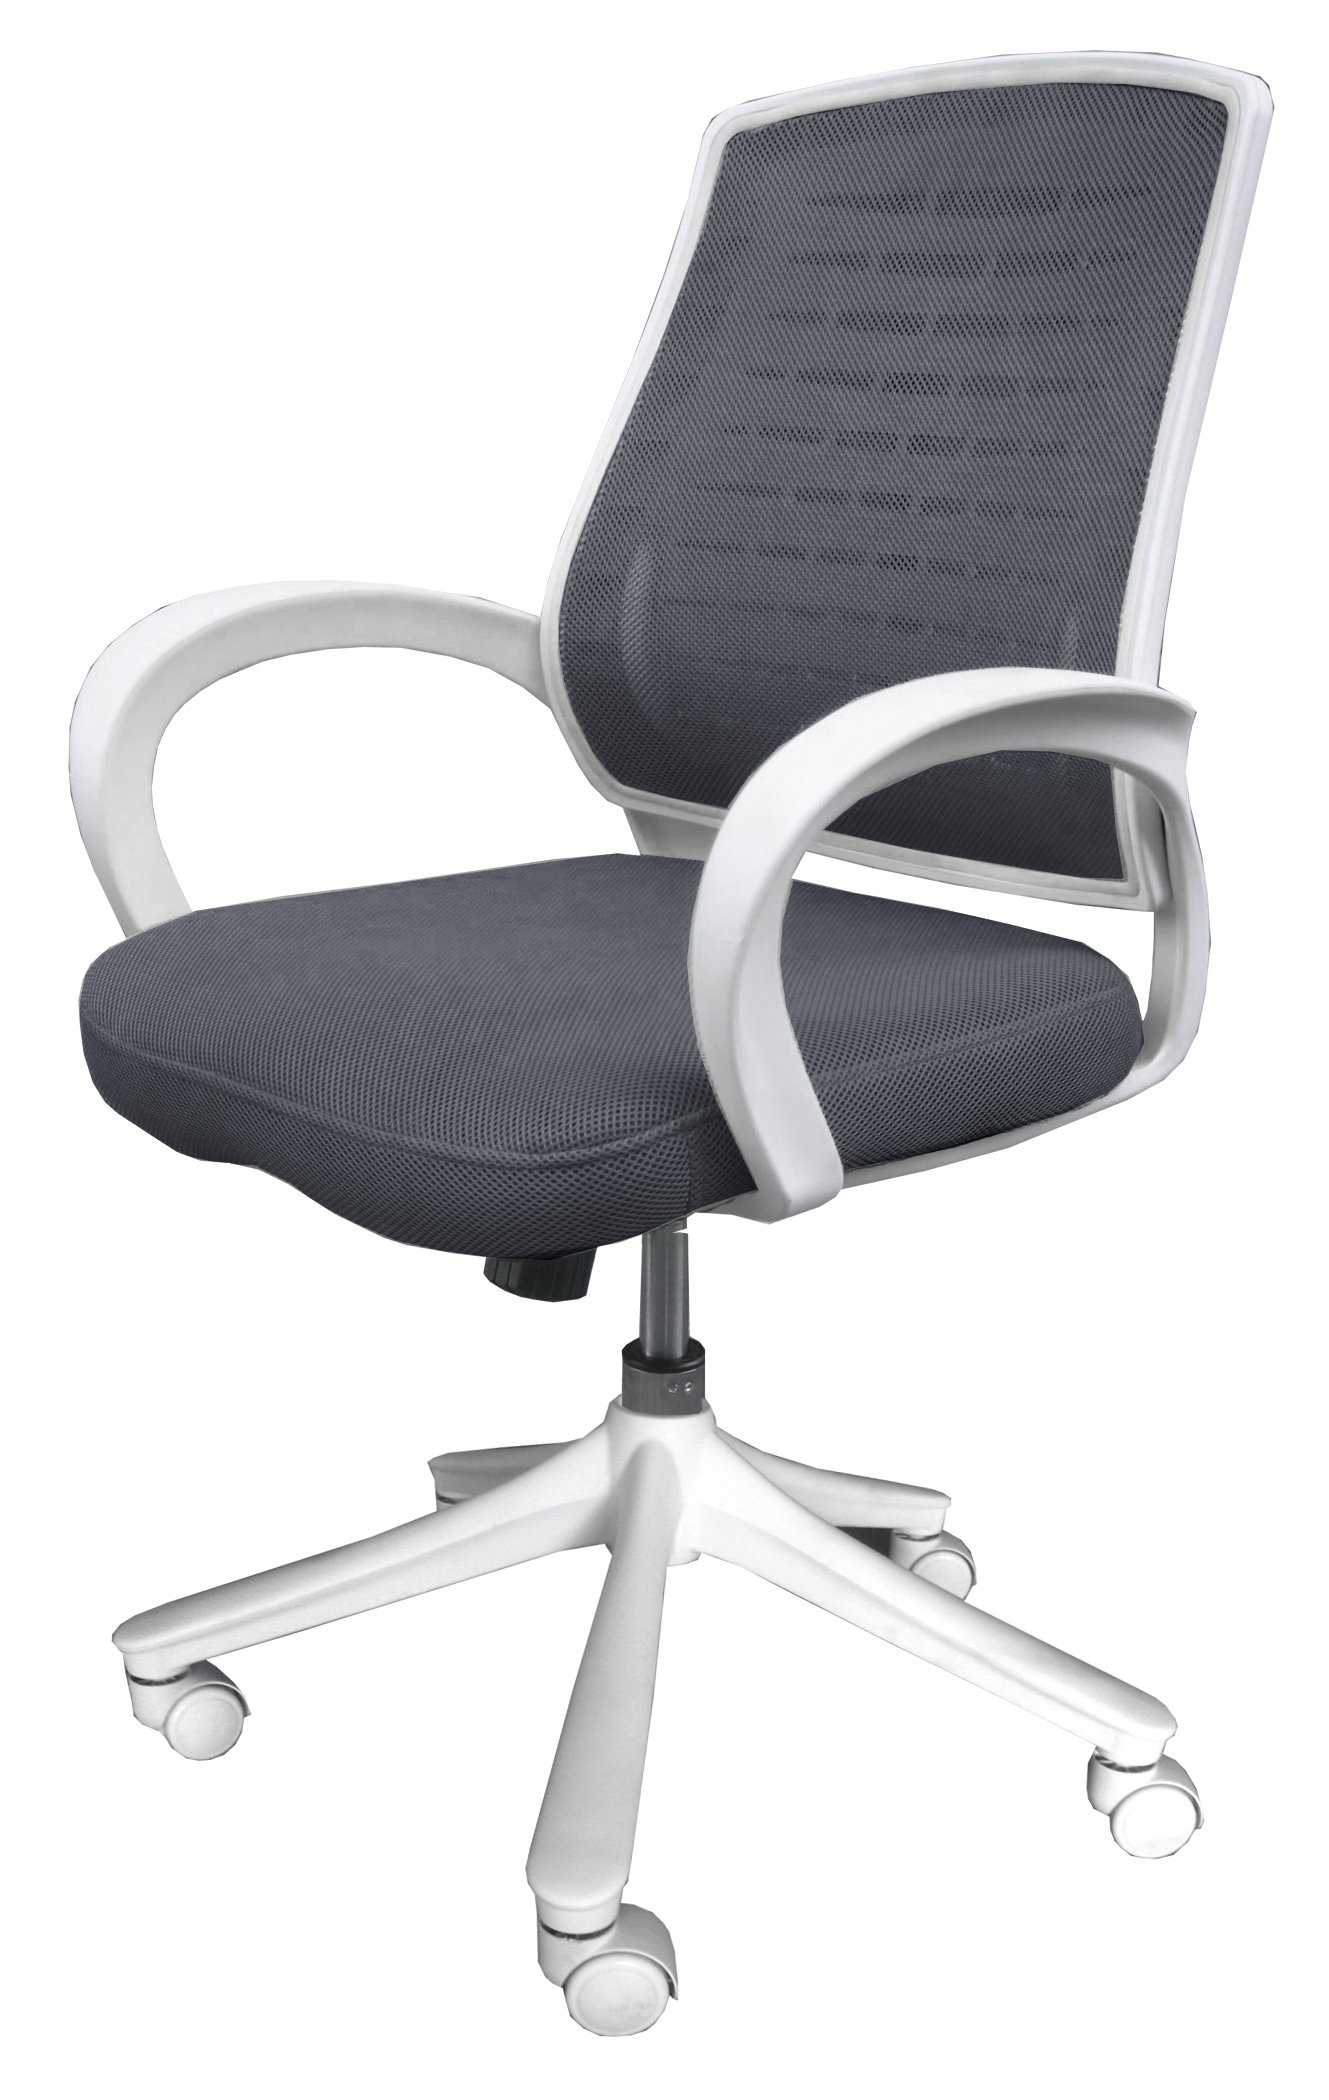 Comfort Products 60-51840004 Iona Mesh Chair, Gray with White Frame, Attractive white molded frame and casters adds distinction to work area, Gray mesh upholstery provides breathable comfort